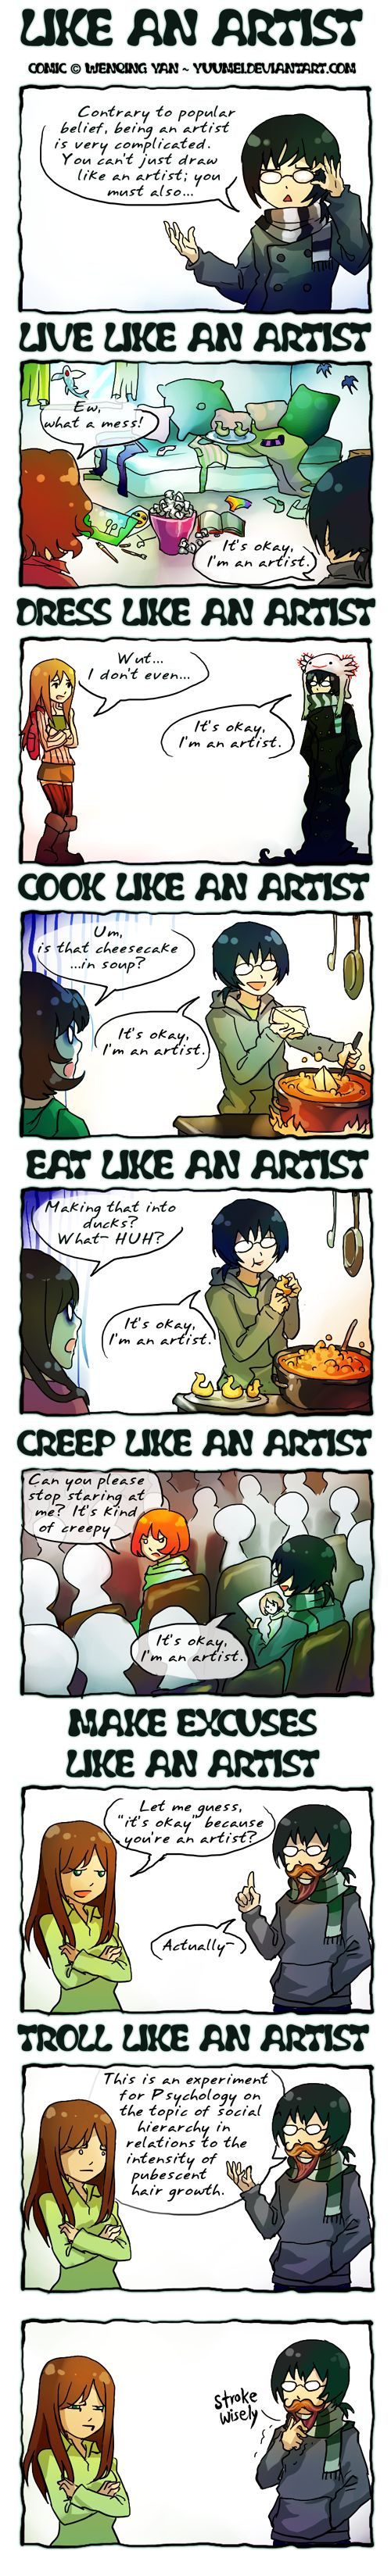 LIKE AN ARTIST by `yuumei I totally relate to the 'creep like an artist' one... my friends will tell you that I take pics of people without their consent or knowledge.